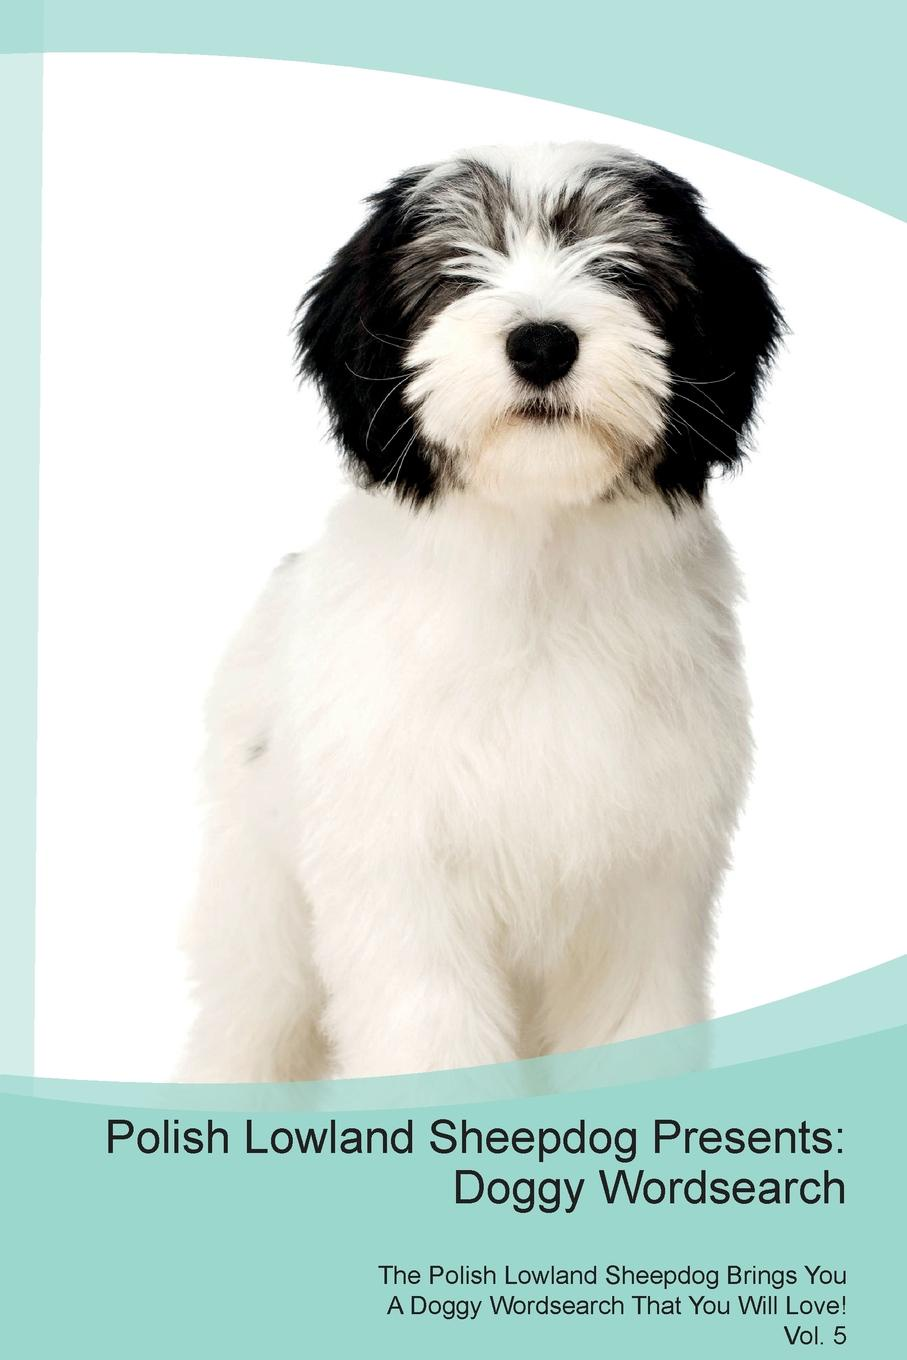 Doggy Puzzles Polish Lowland Sheepdog Presents. Wordsearch The Brings You A That Will Love! Vol. 5